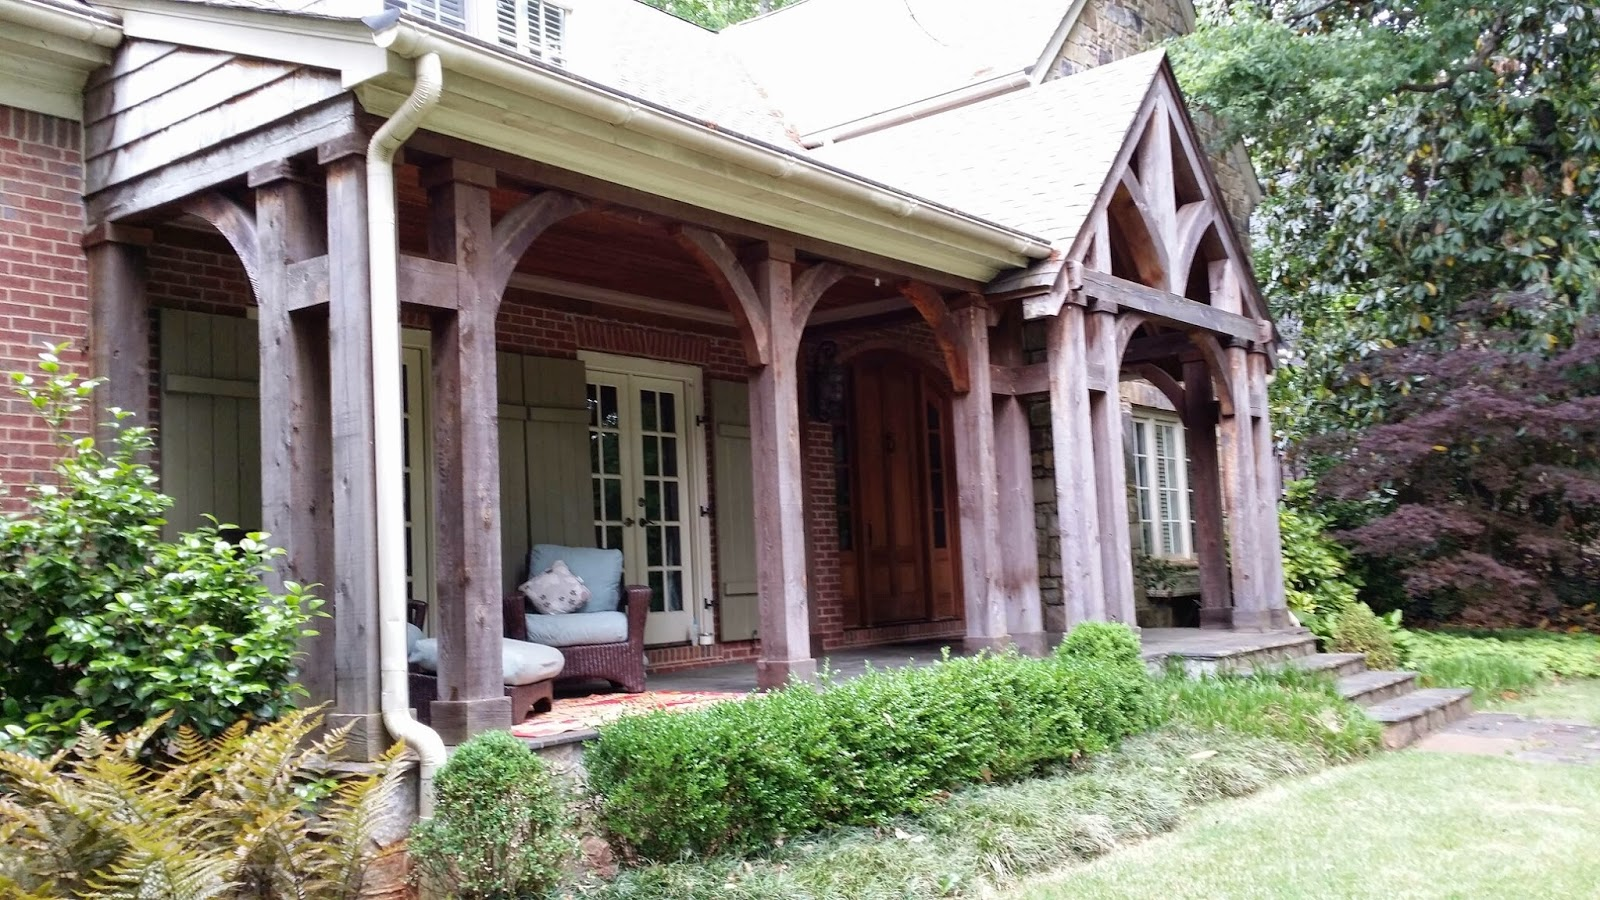 TARA DILLARD: Front Porch: Foundation Plantings or Steps? on house entrance ideas, front home views, front door ideas, front cottage ideas, old house ideas, dining room ideas,